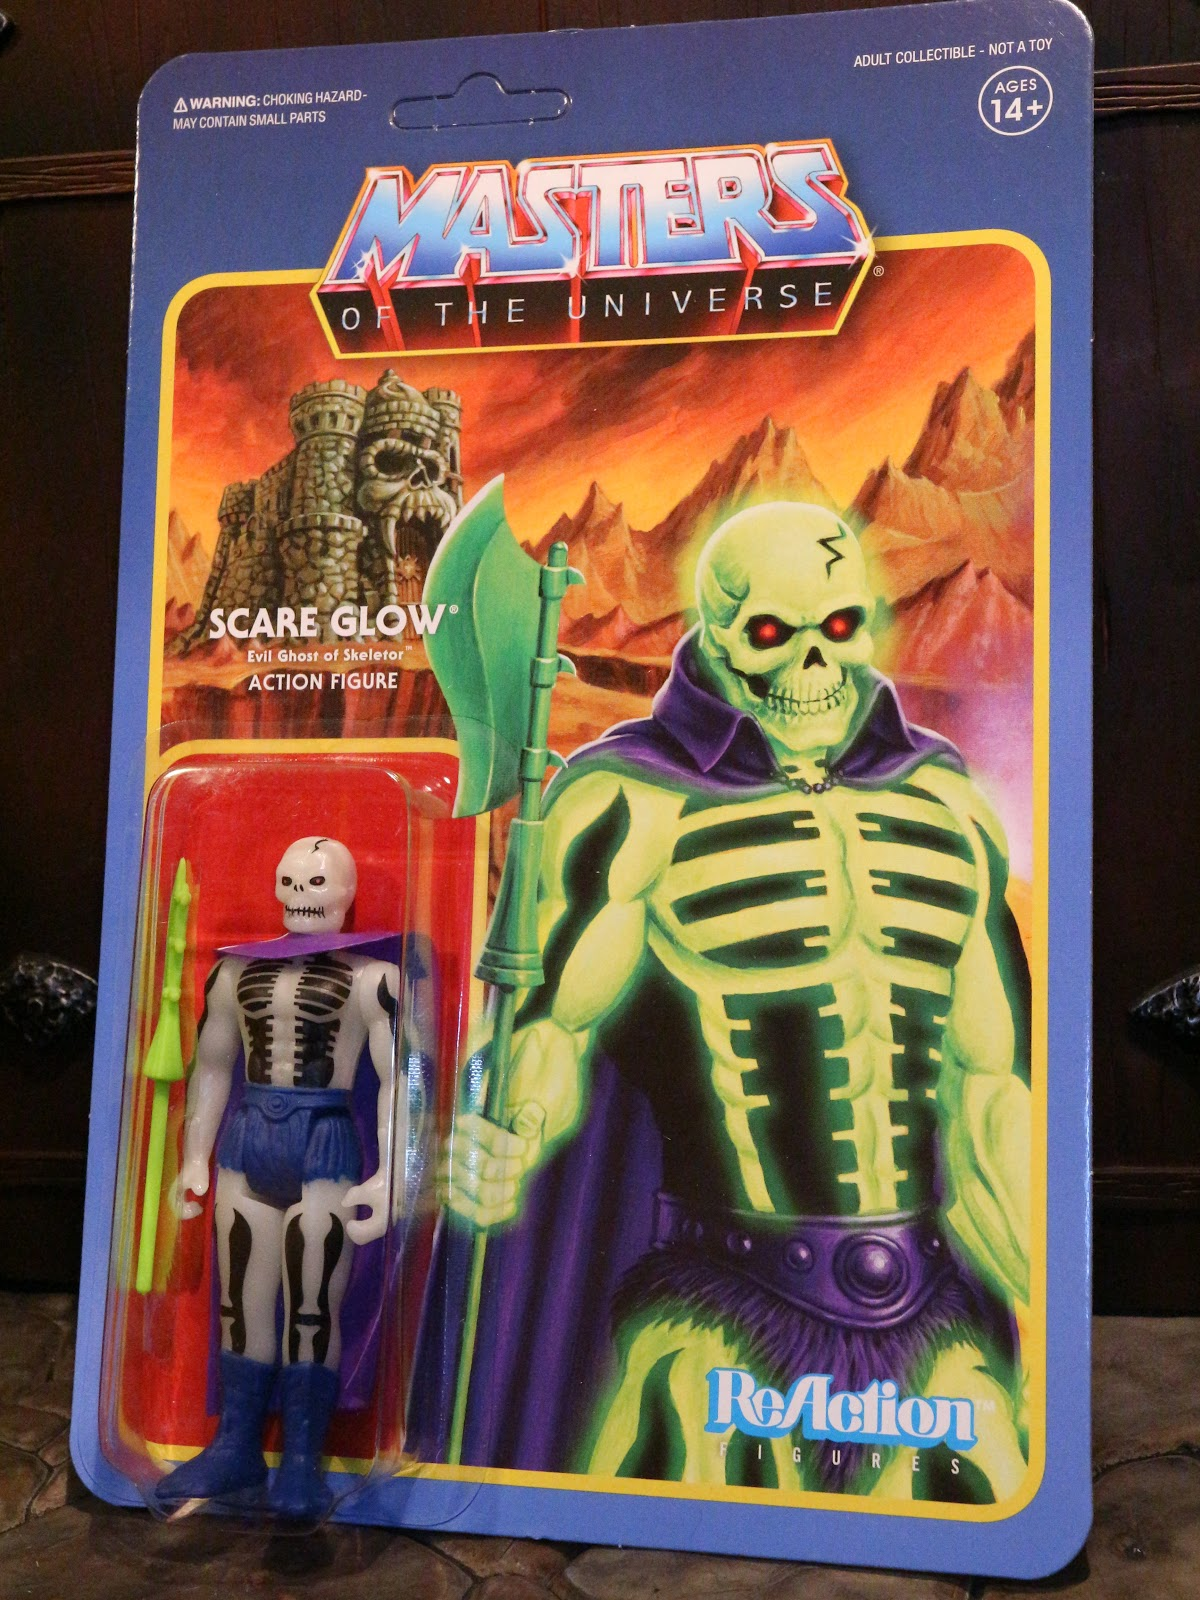 Reaction - MASTERS OF THE UNIVERSE SCARE GLOW REACTION FIGURE